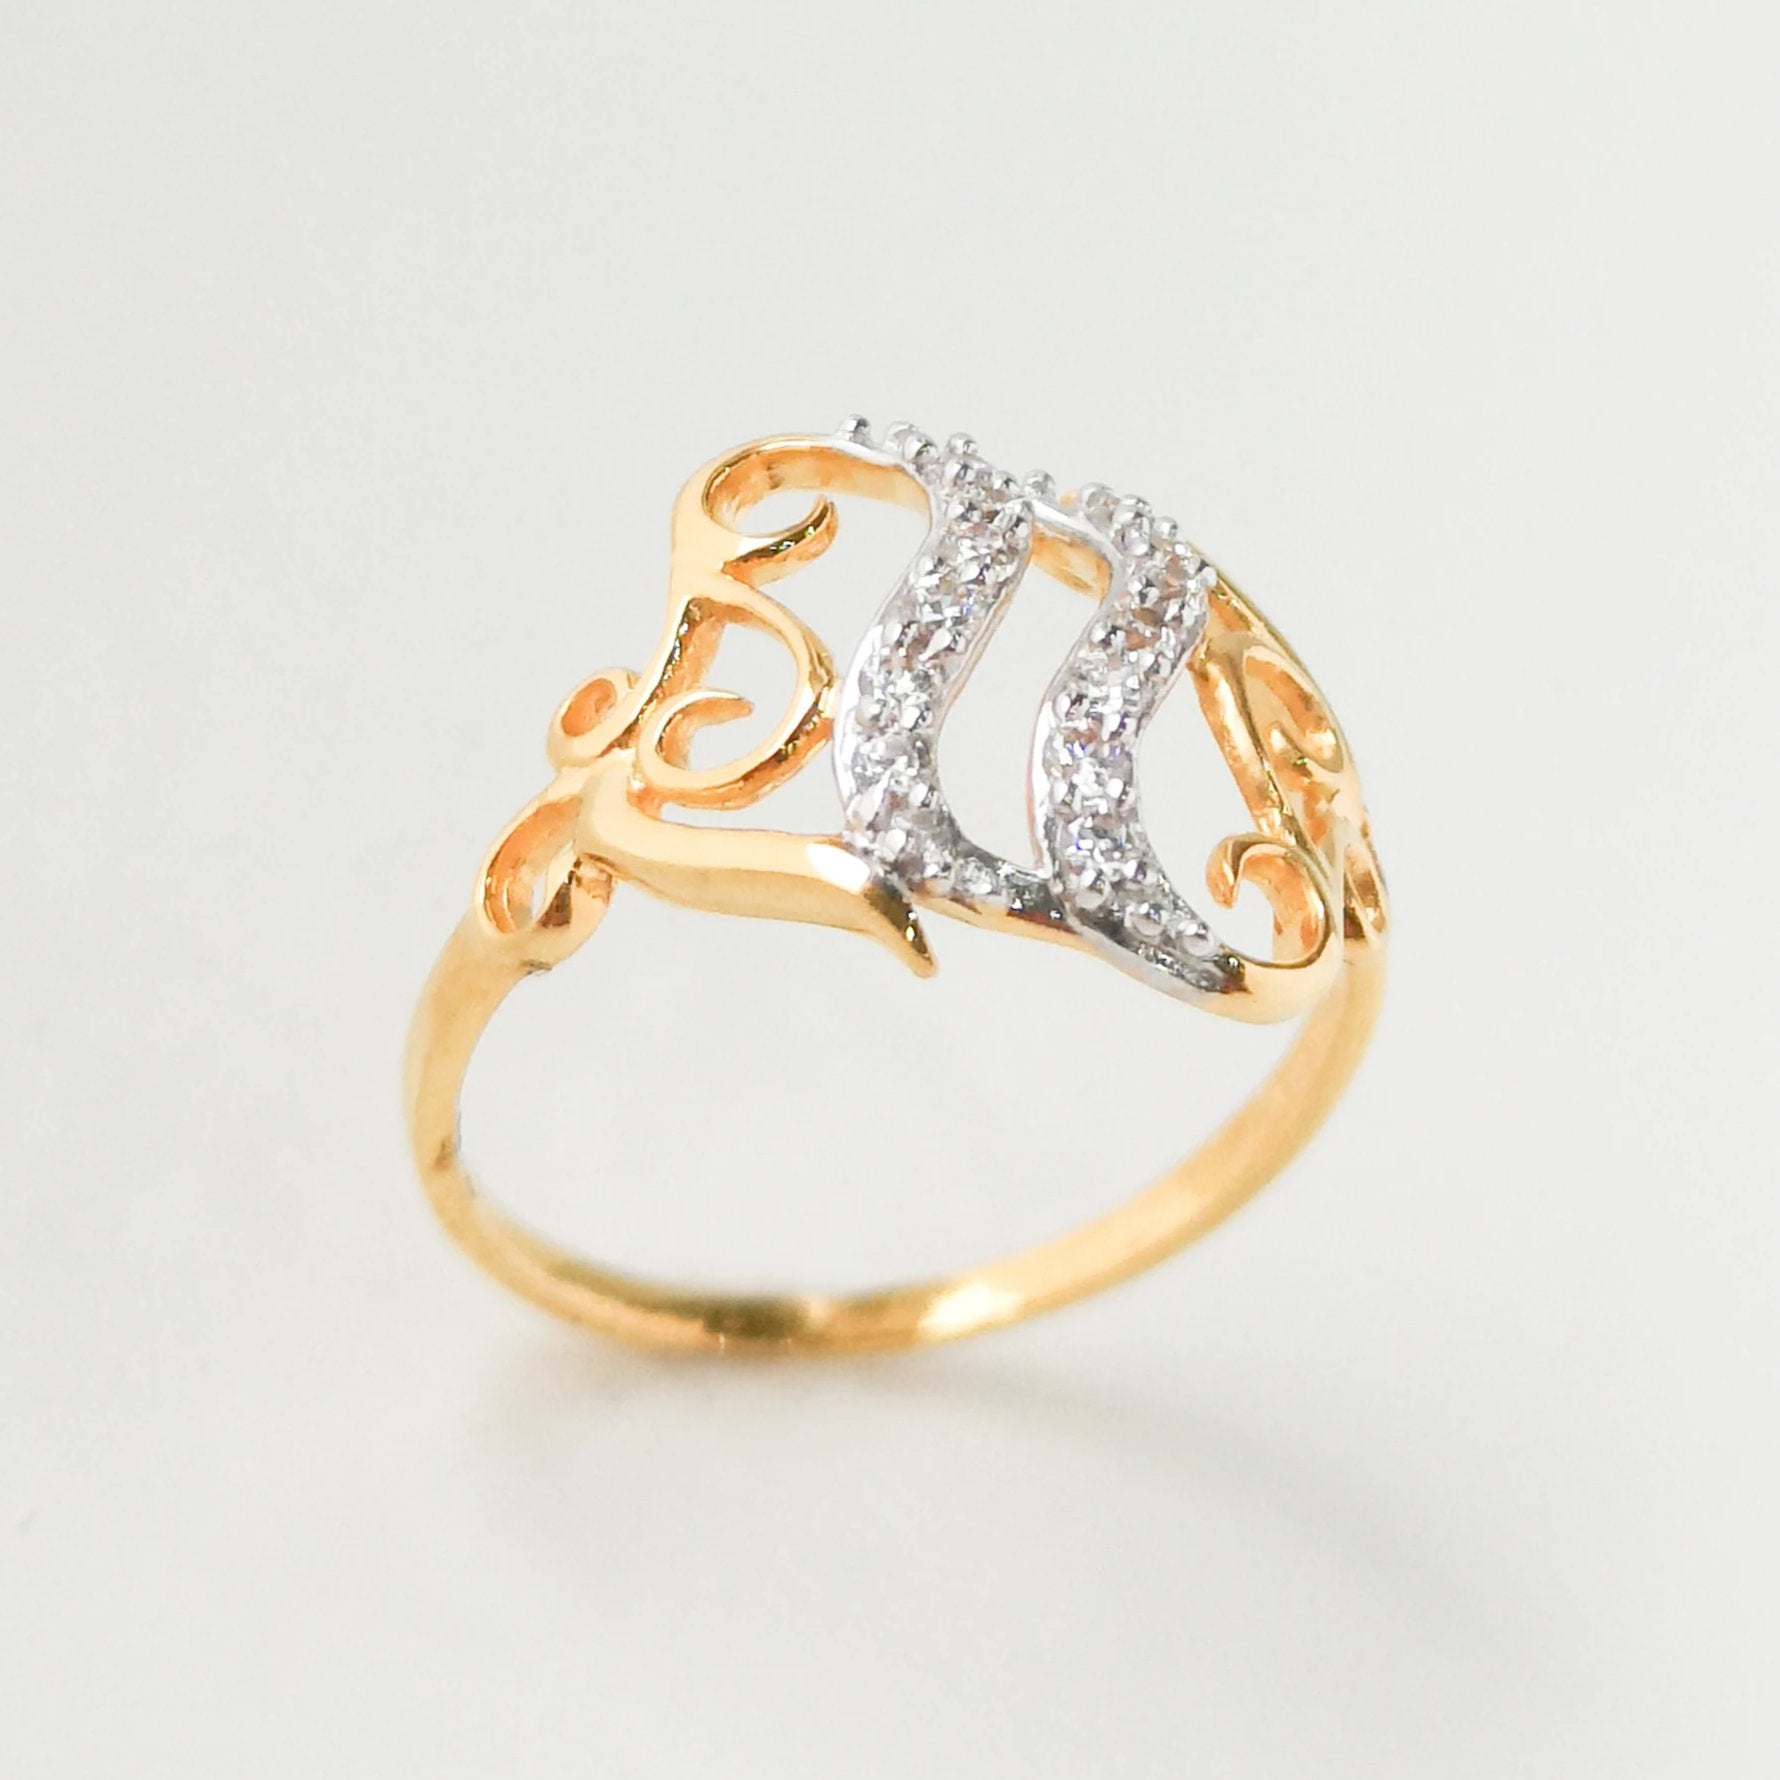 Dress Ring 22ct Gold with Swarovski Zirconias LR15388